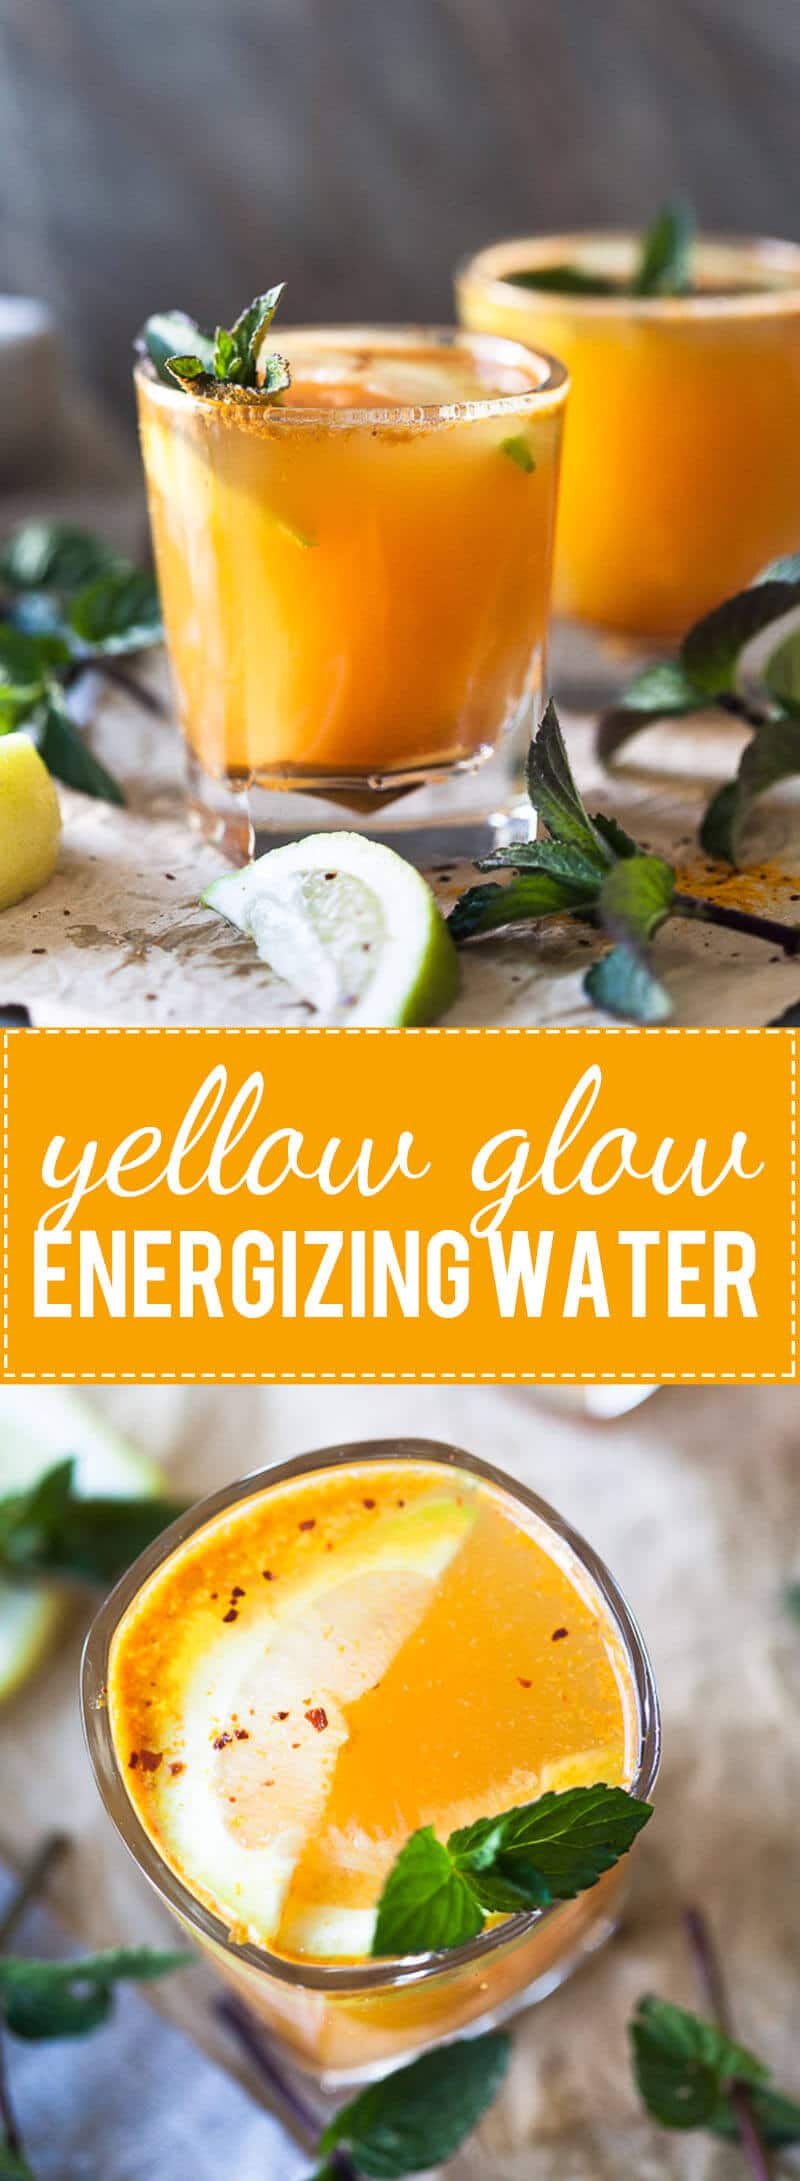 Yellow Glow Energizing Water with Turmeric, Ginger, Cinnamon, and Chili to help boost your immune system.